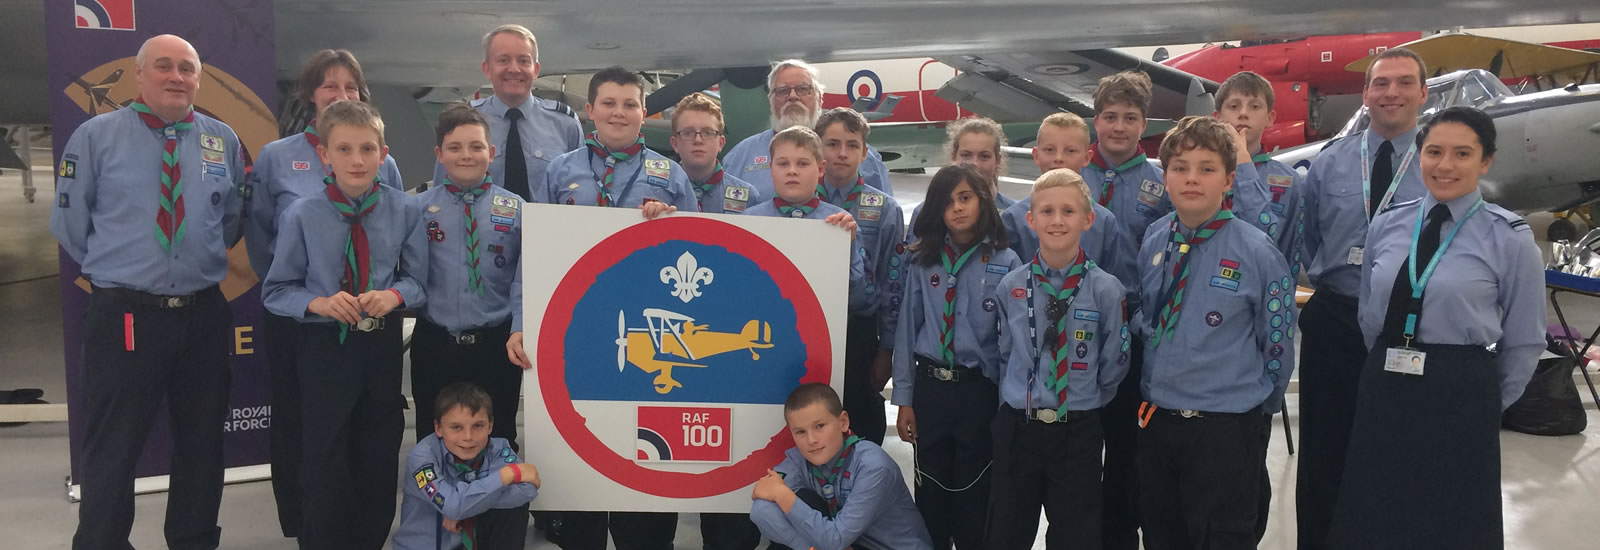 1st Sywell Air Scout Group Celebrating RAF100